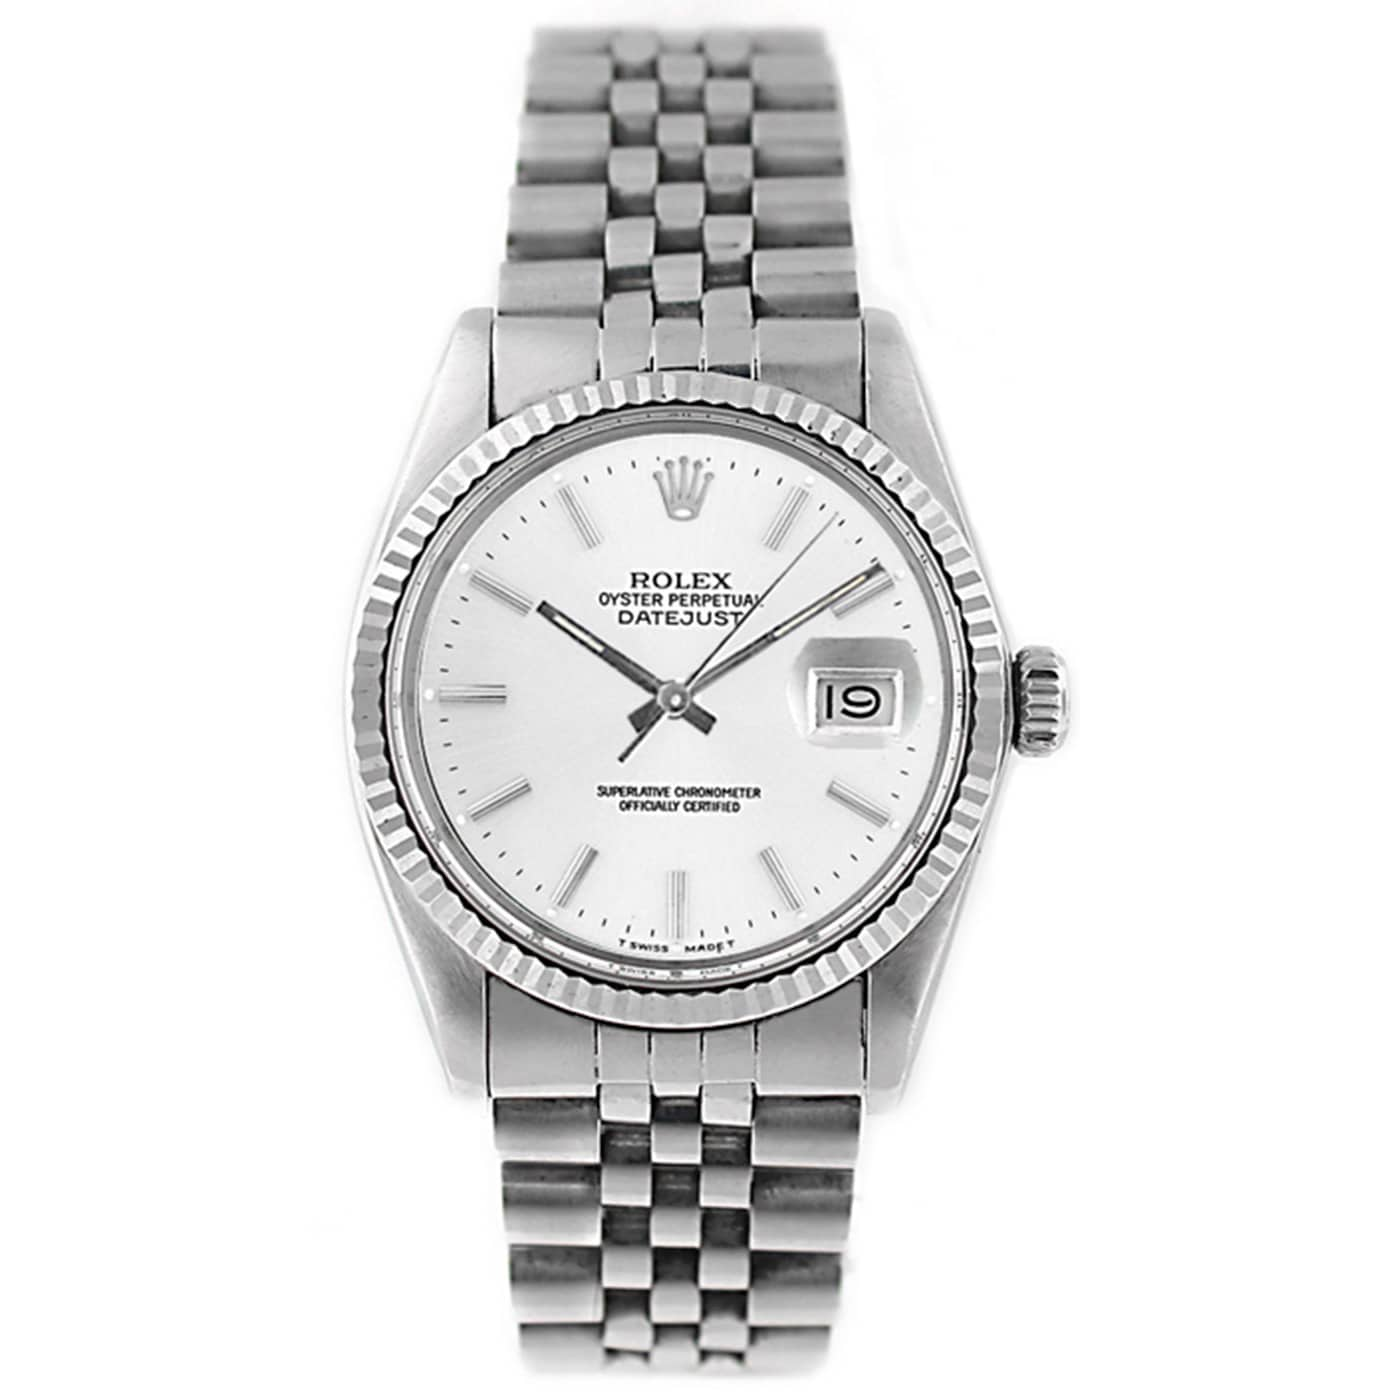 Stainless Rolex Pre Owned Rolex Men S Datejust 16014 Stainless Steel White Stick Watch